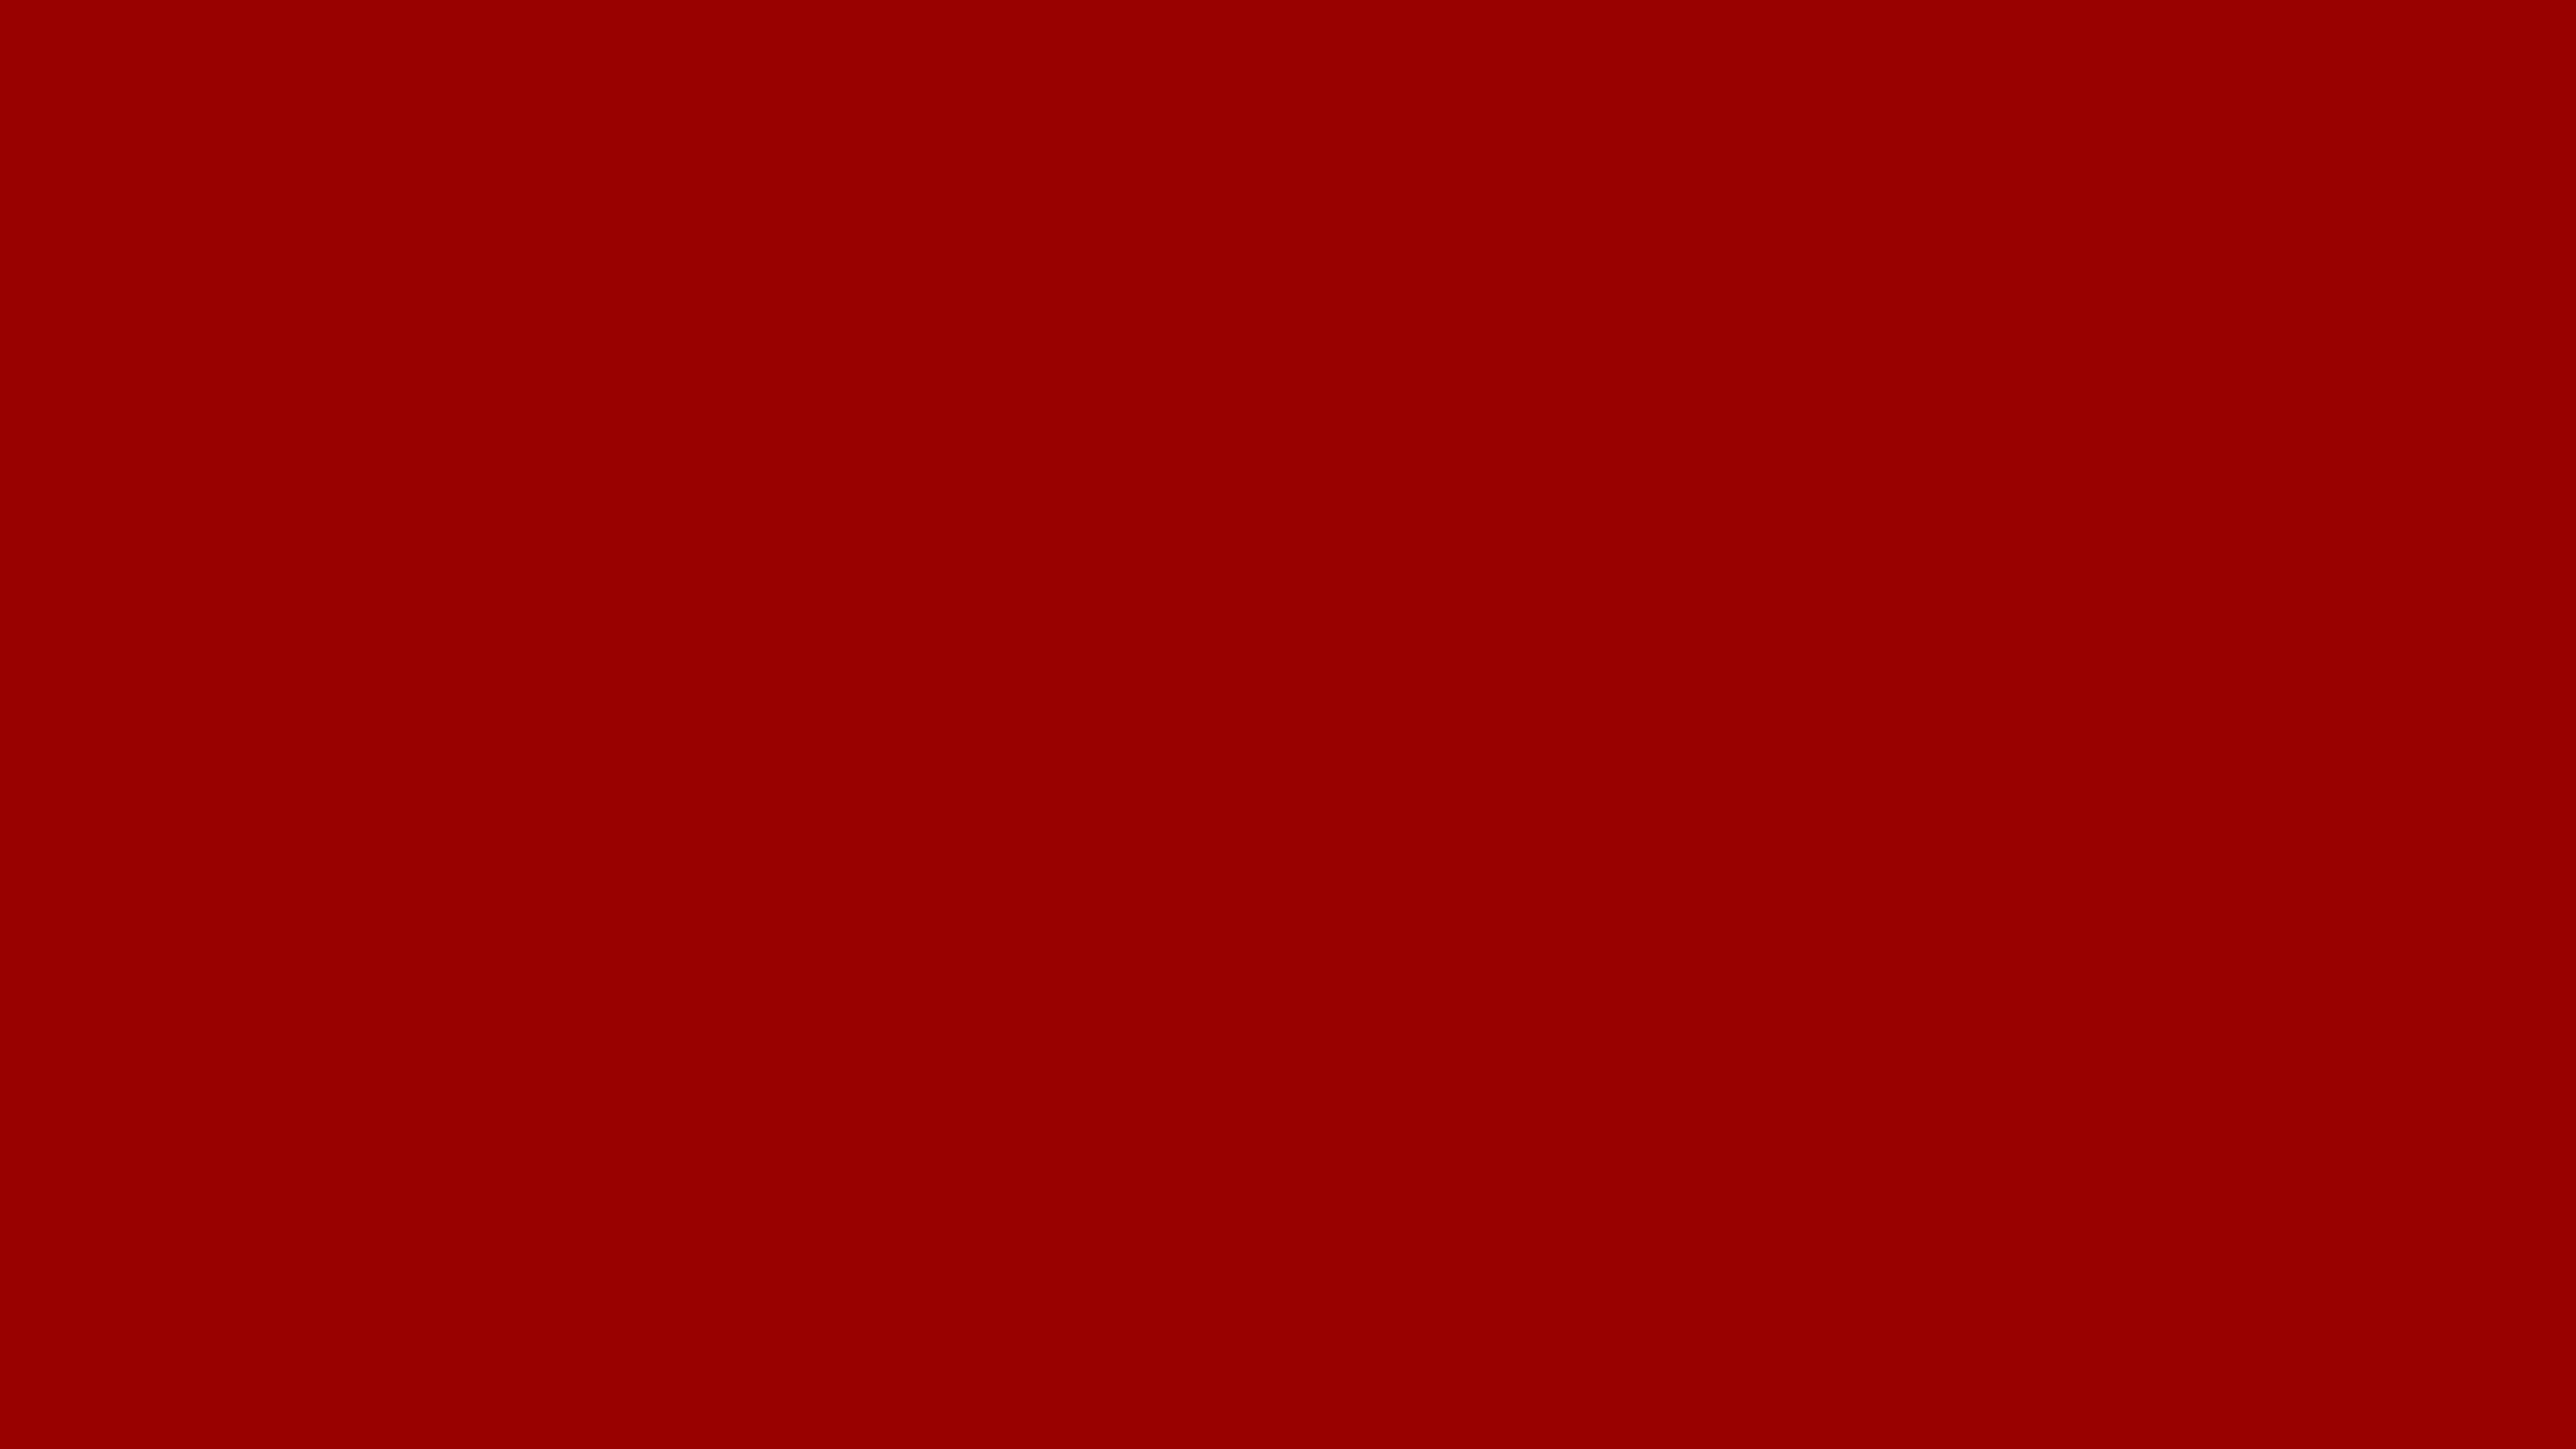 4096x2304 USC Cardinal Solid Color Background